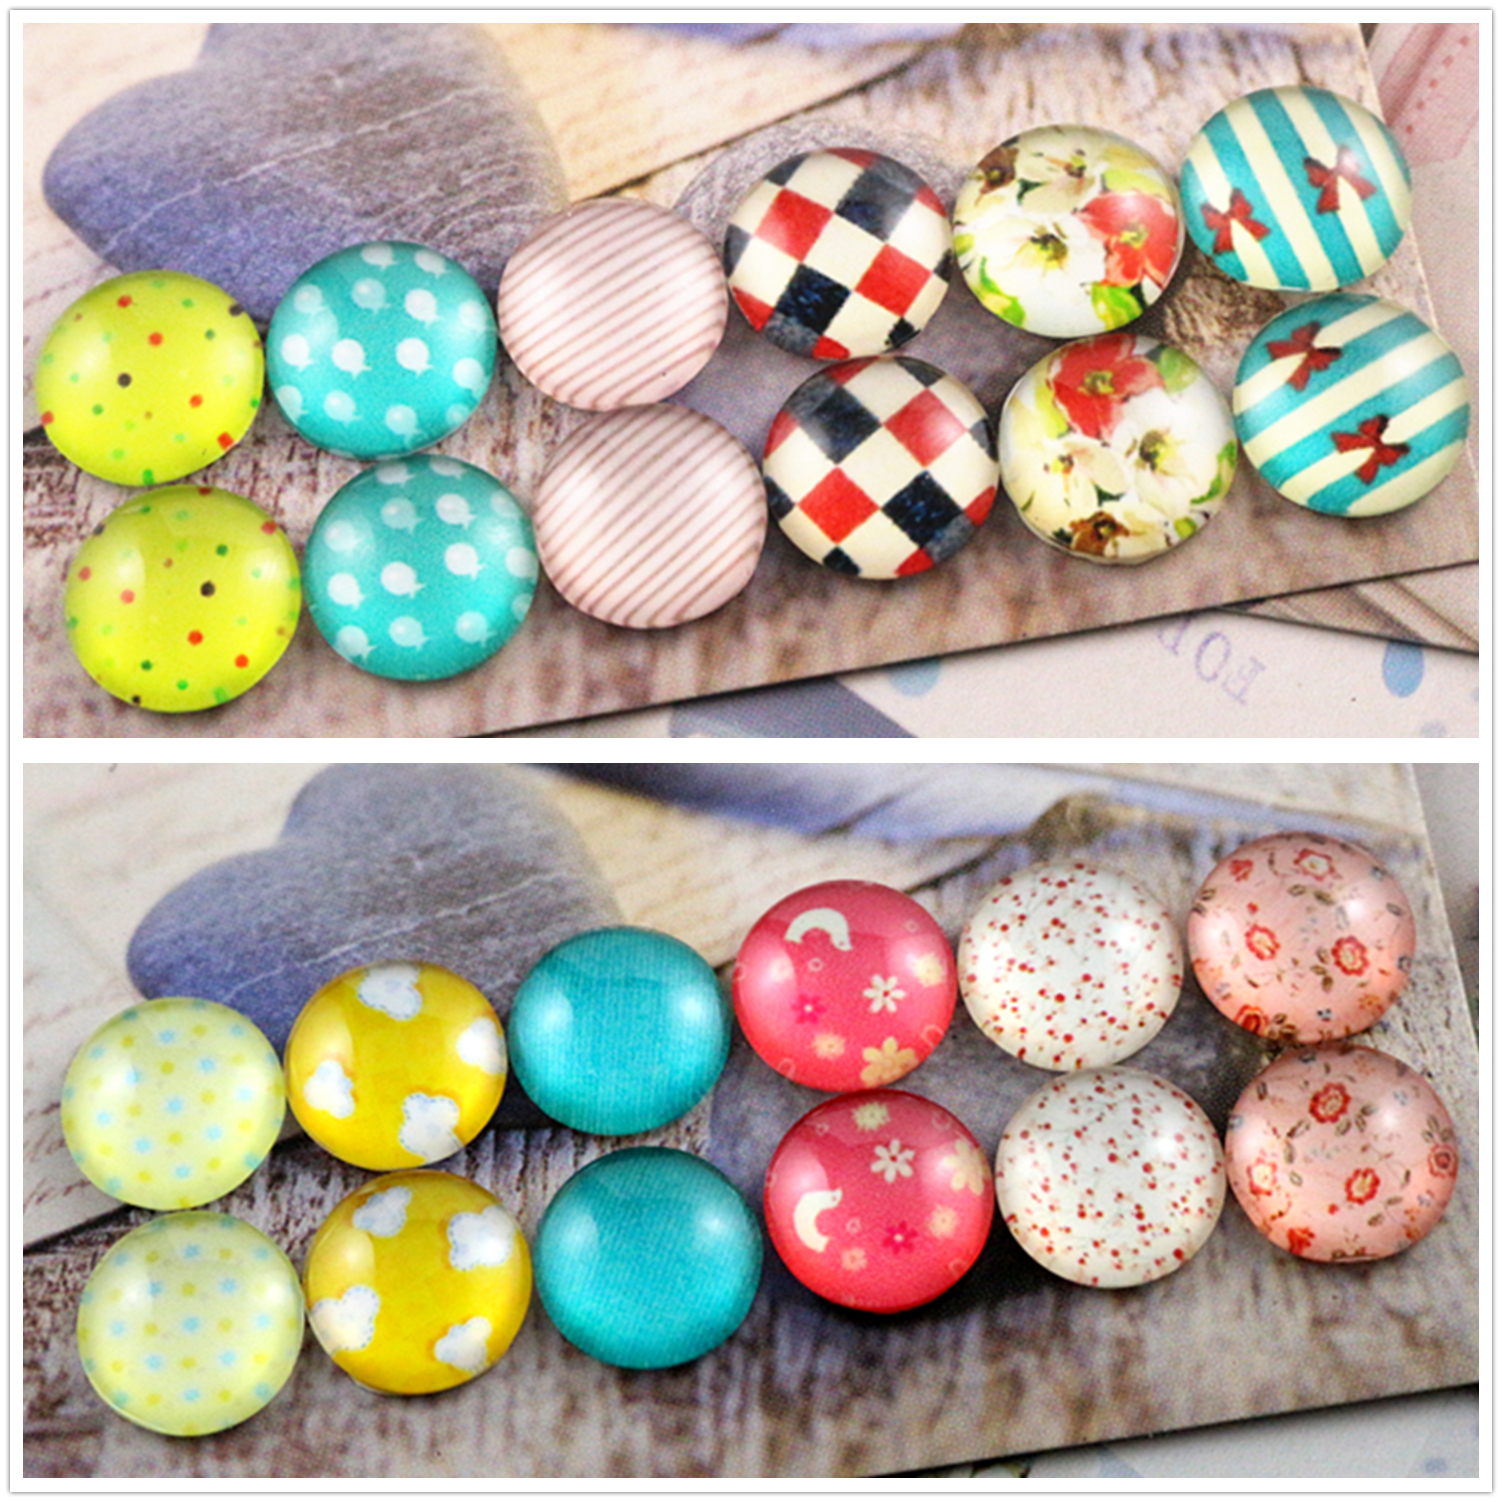 12pcs/ lot (One Set) Two Style 12mm Color flower, wave point Handmade Glass Cabochons Pattern Domed Jewelry Accessories Supplies12pcs/ lot (One Set) Two Style 12mm Color flower, wave point Handmade Glass Cabochons Pattern Domed Jewelry Accessories Supplies